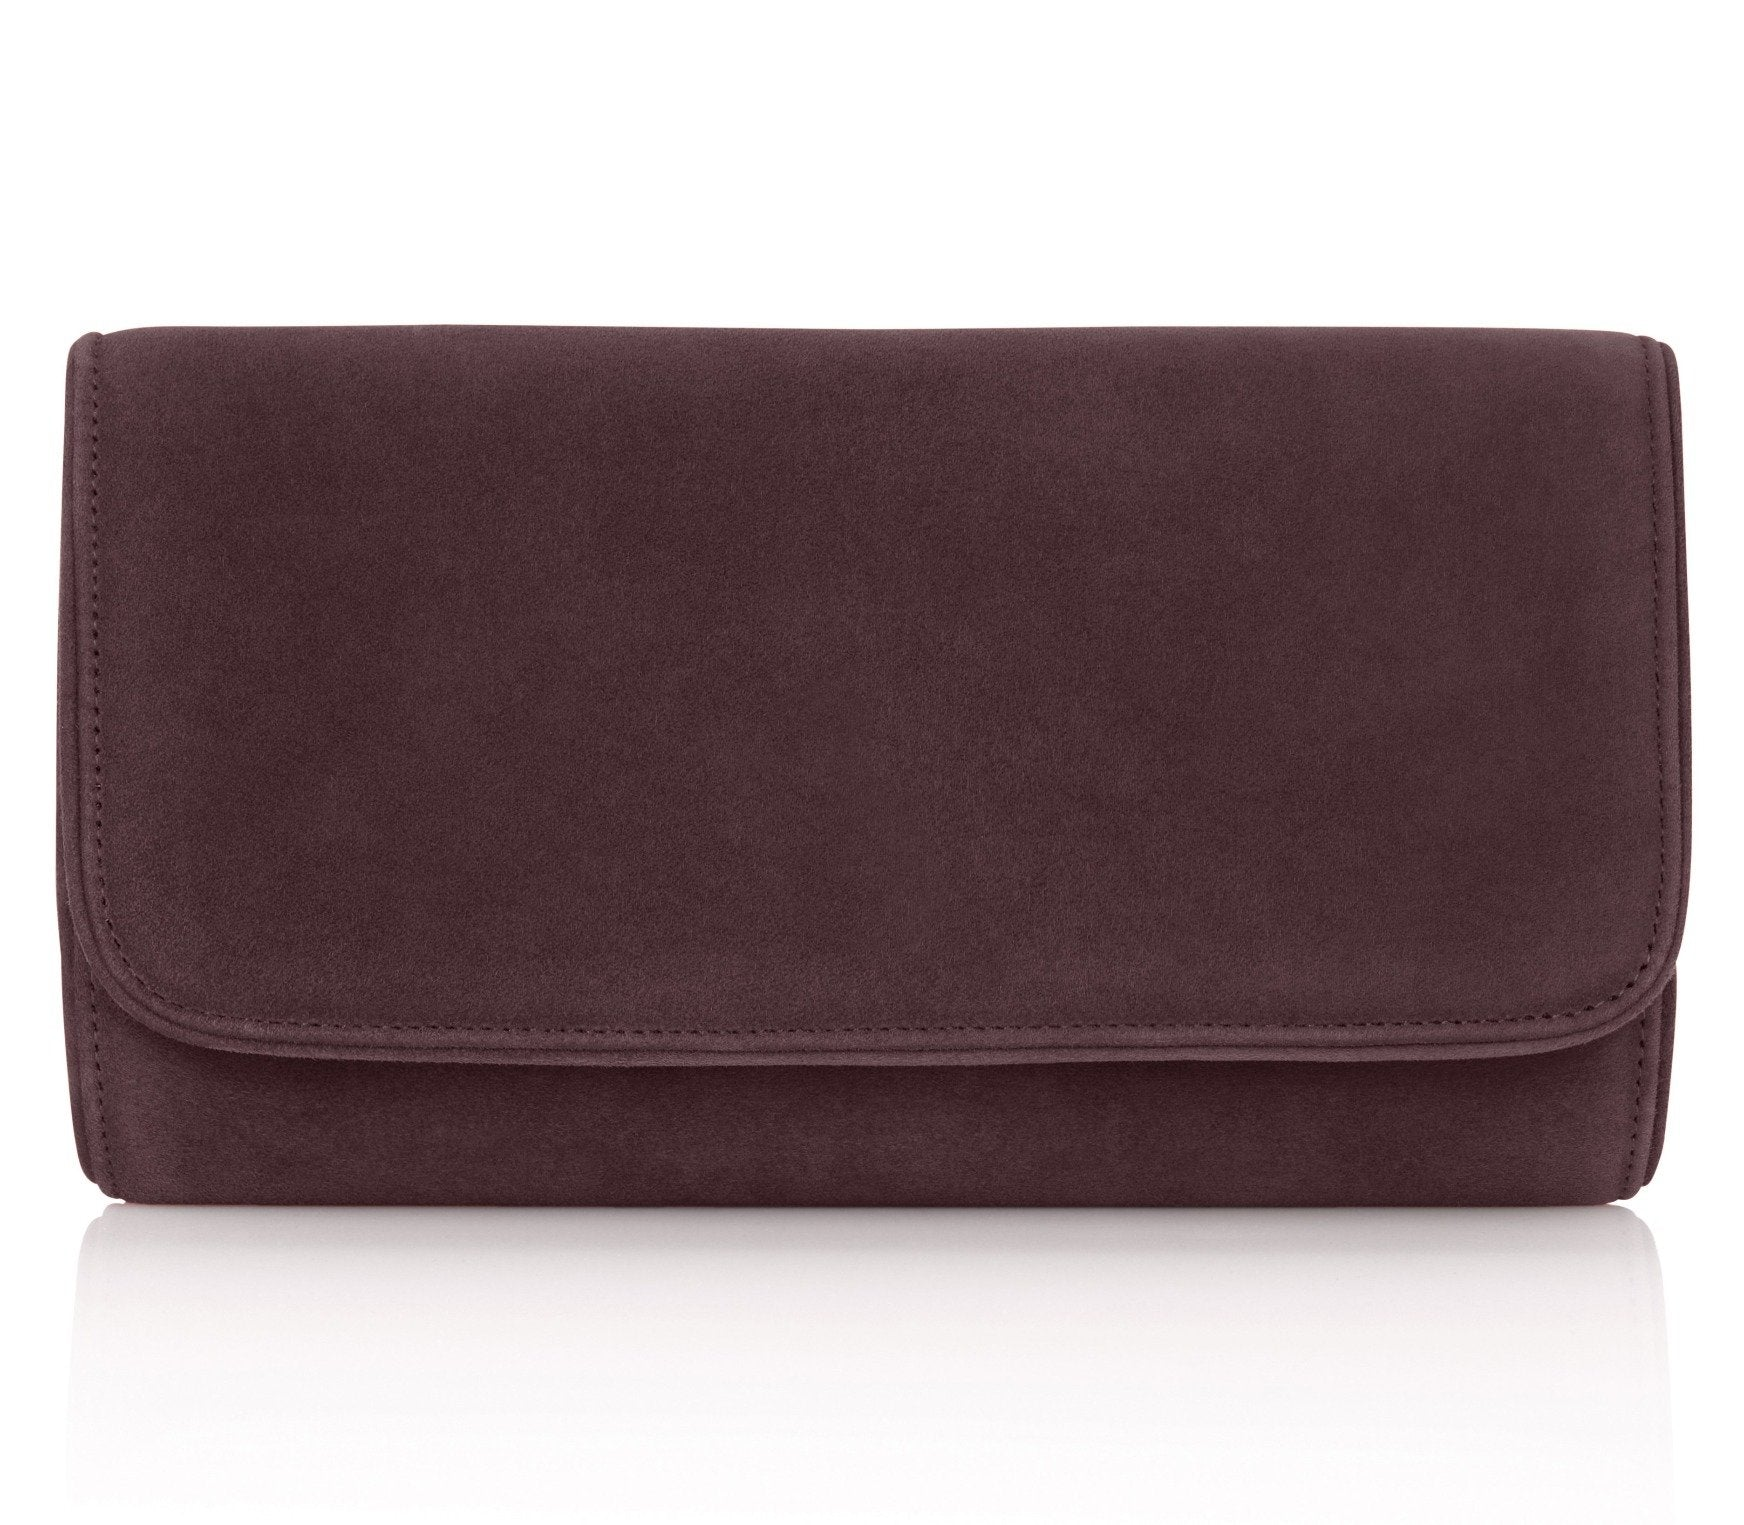 Natasha Mocha Self Piped Clutch Bag By Emmy London